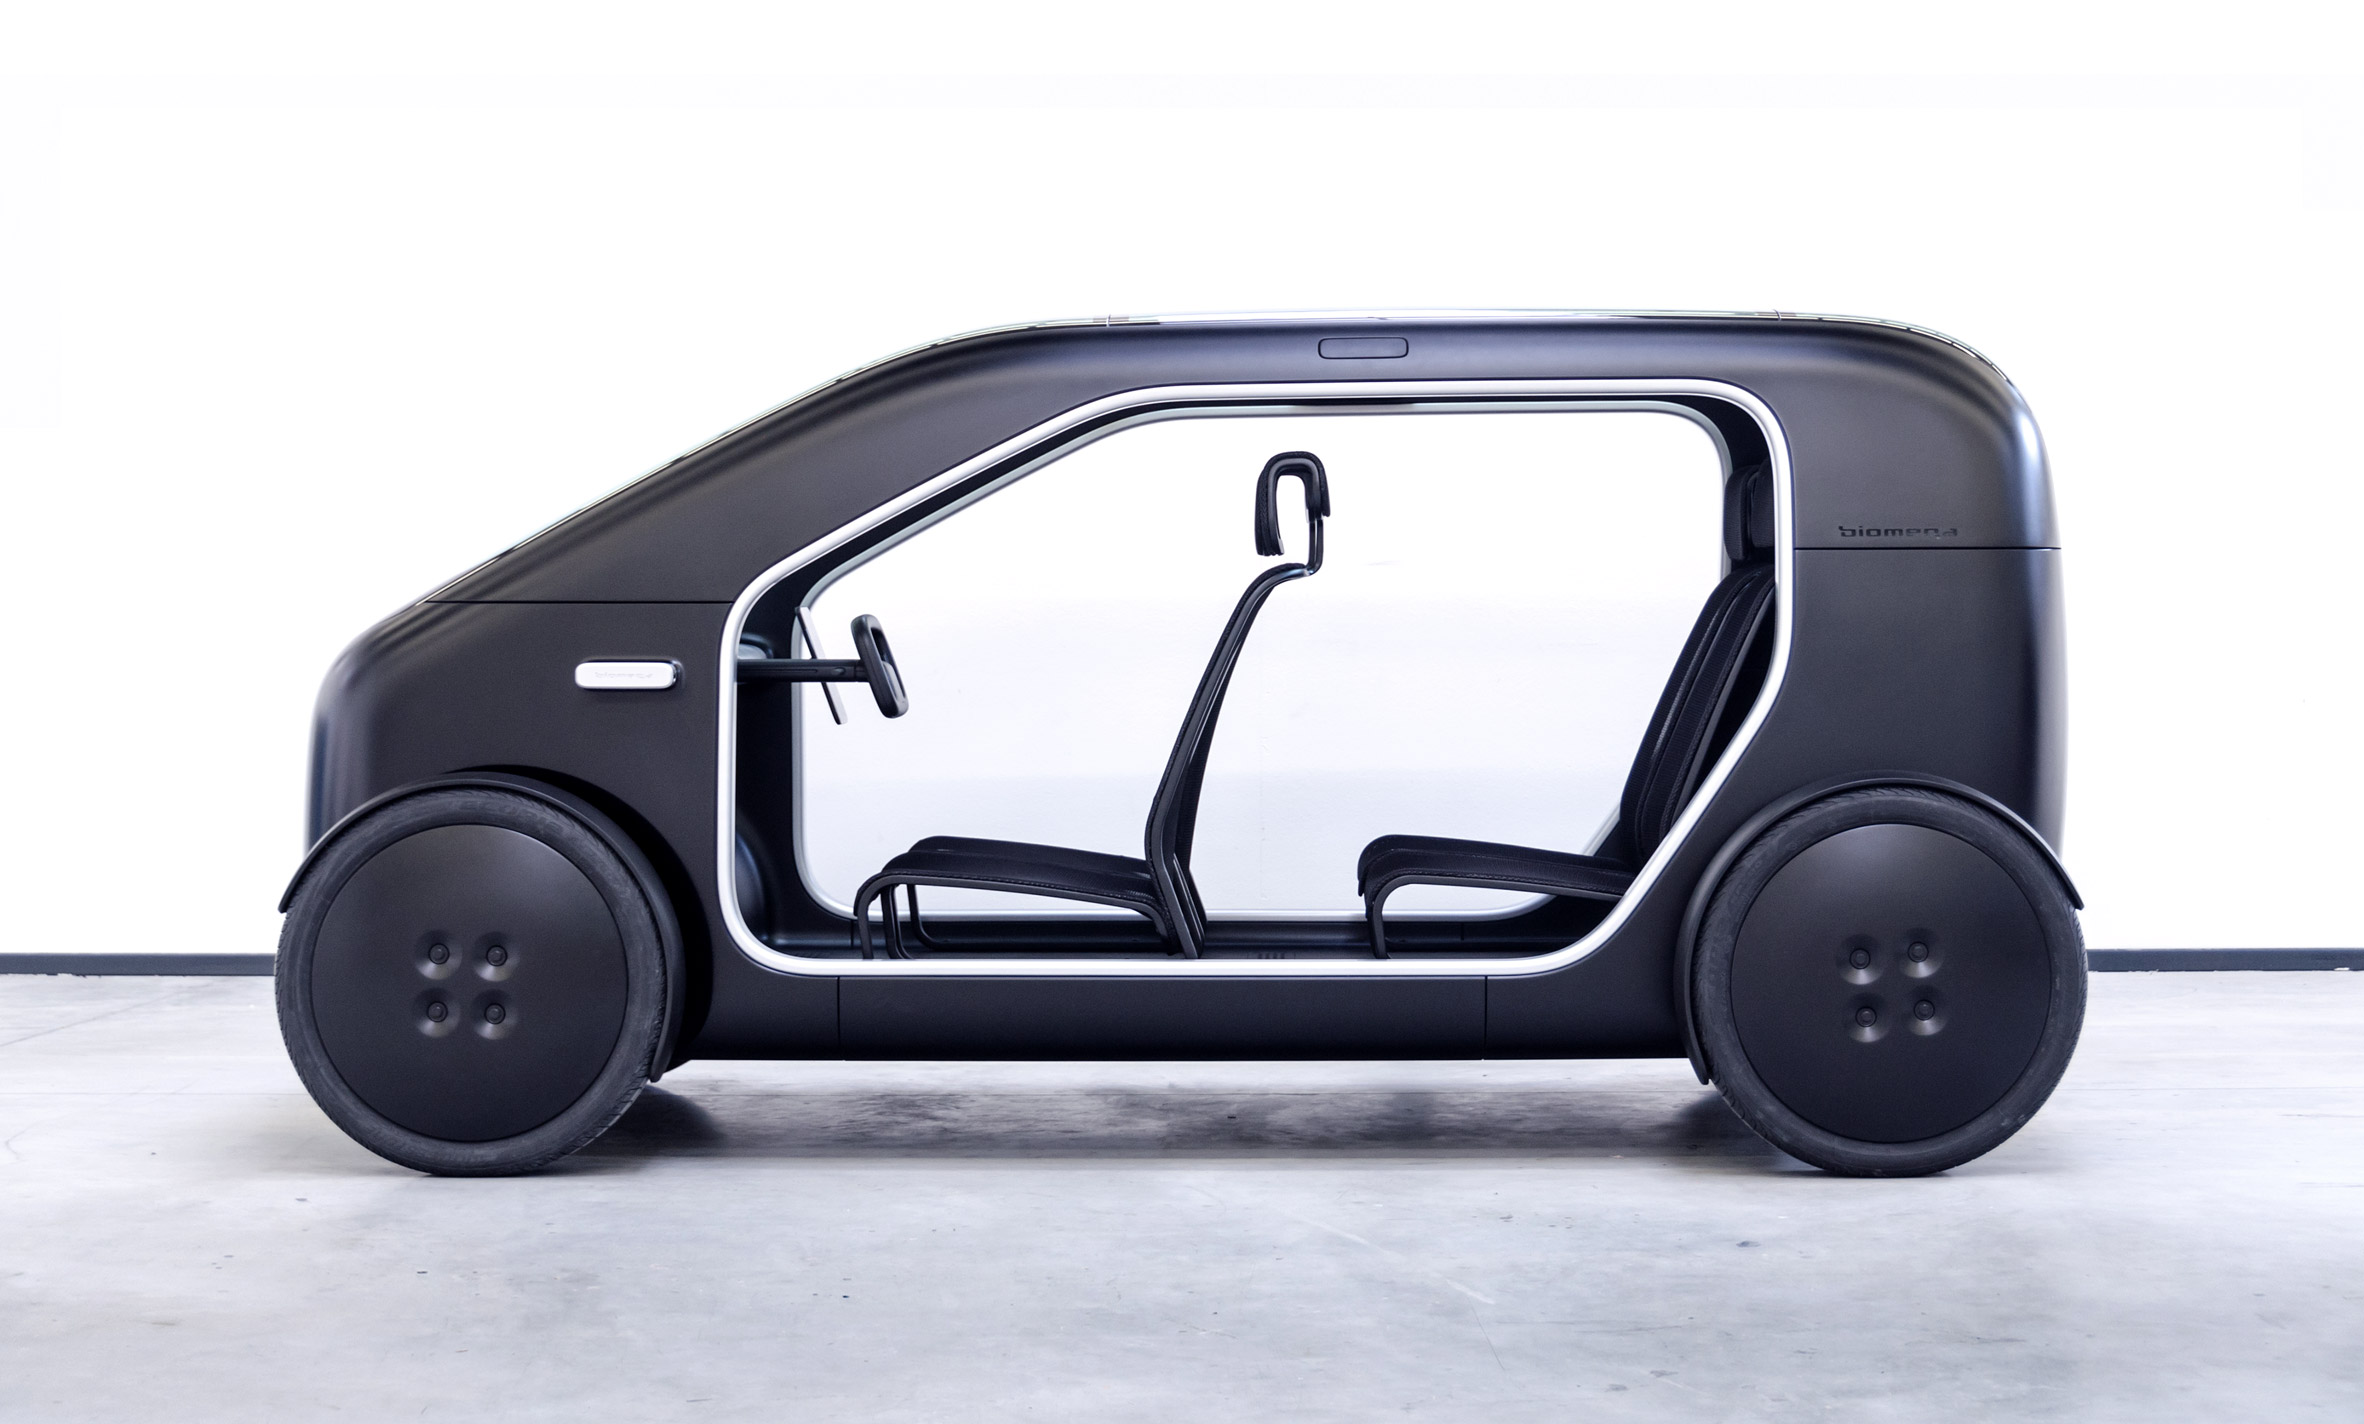 SIN is a Biomega electric car that is low-cost and low-weight